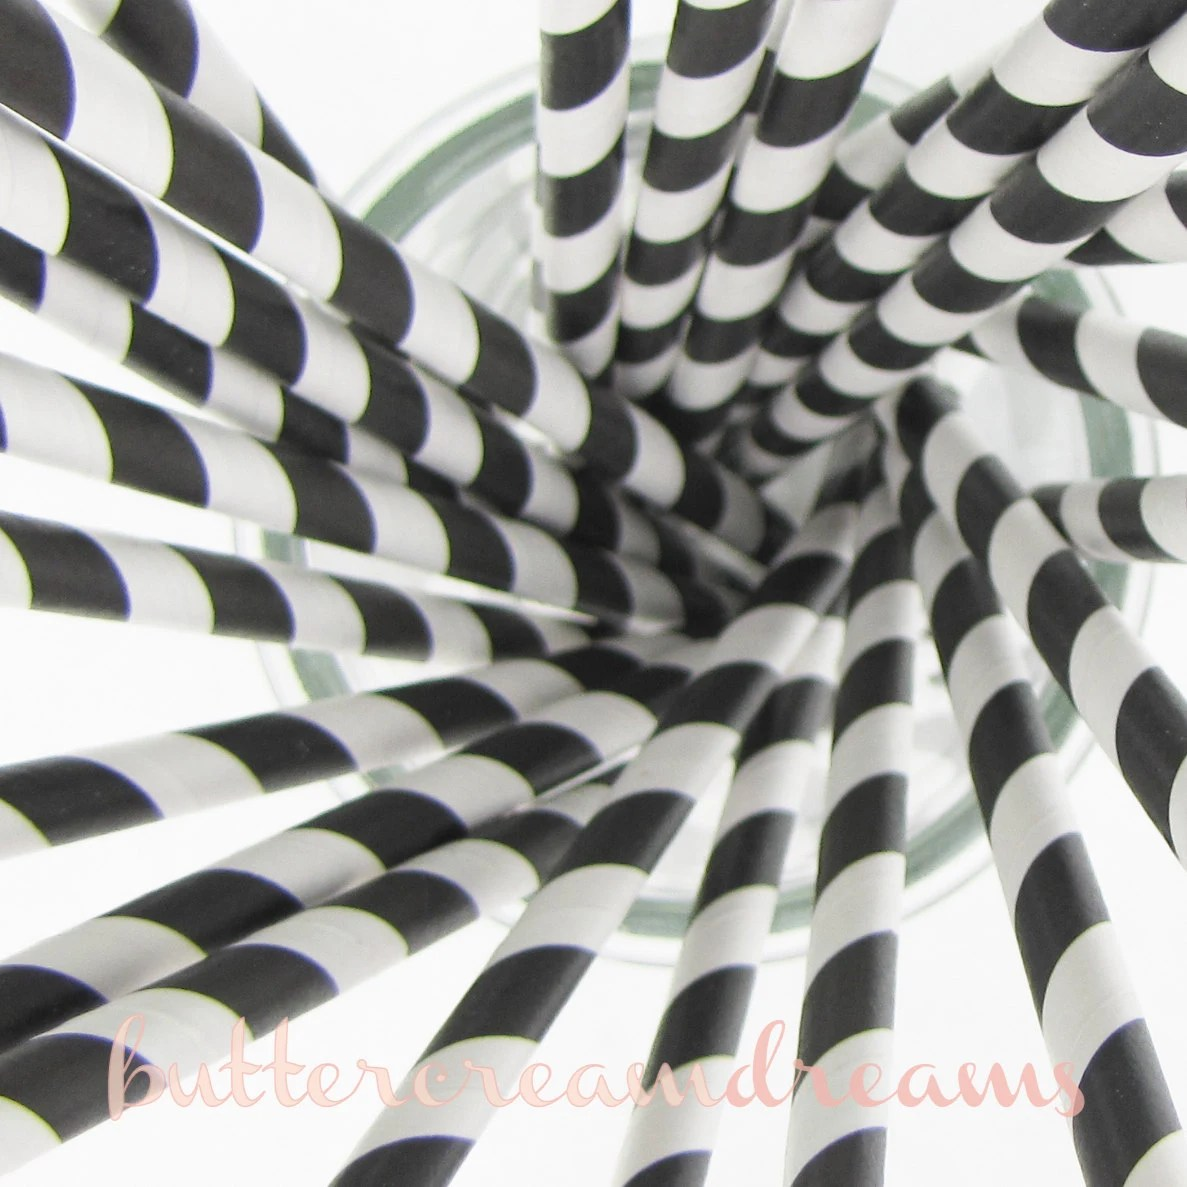 Paper Drinking Straws (25) - BLACK & WHITE - with FREE 5x7 Party Invitation Download - ButtercreamDreamShop